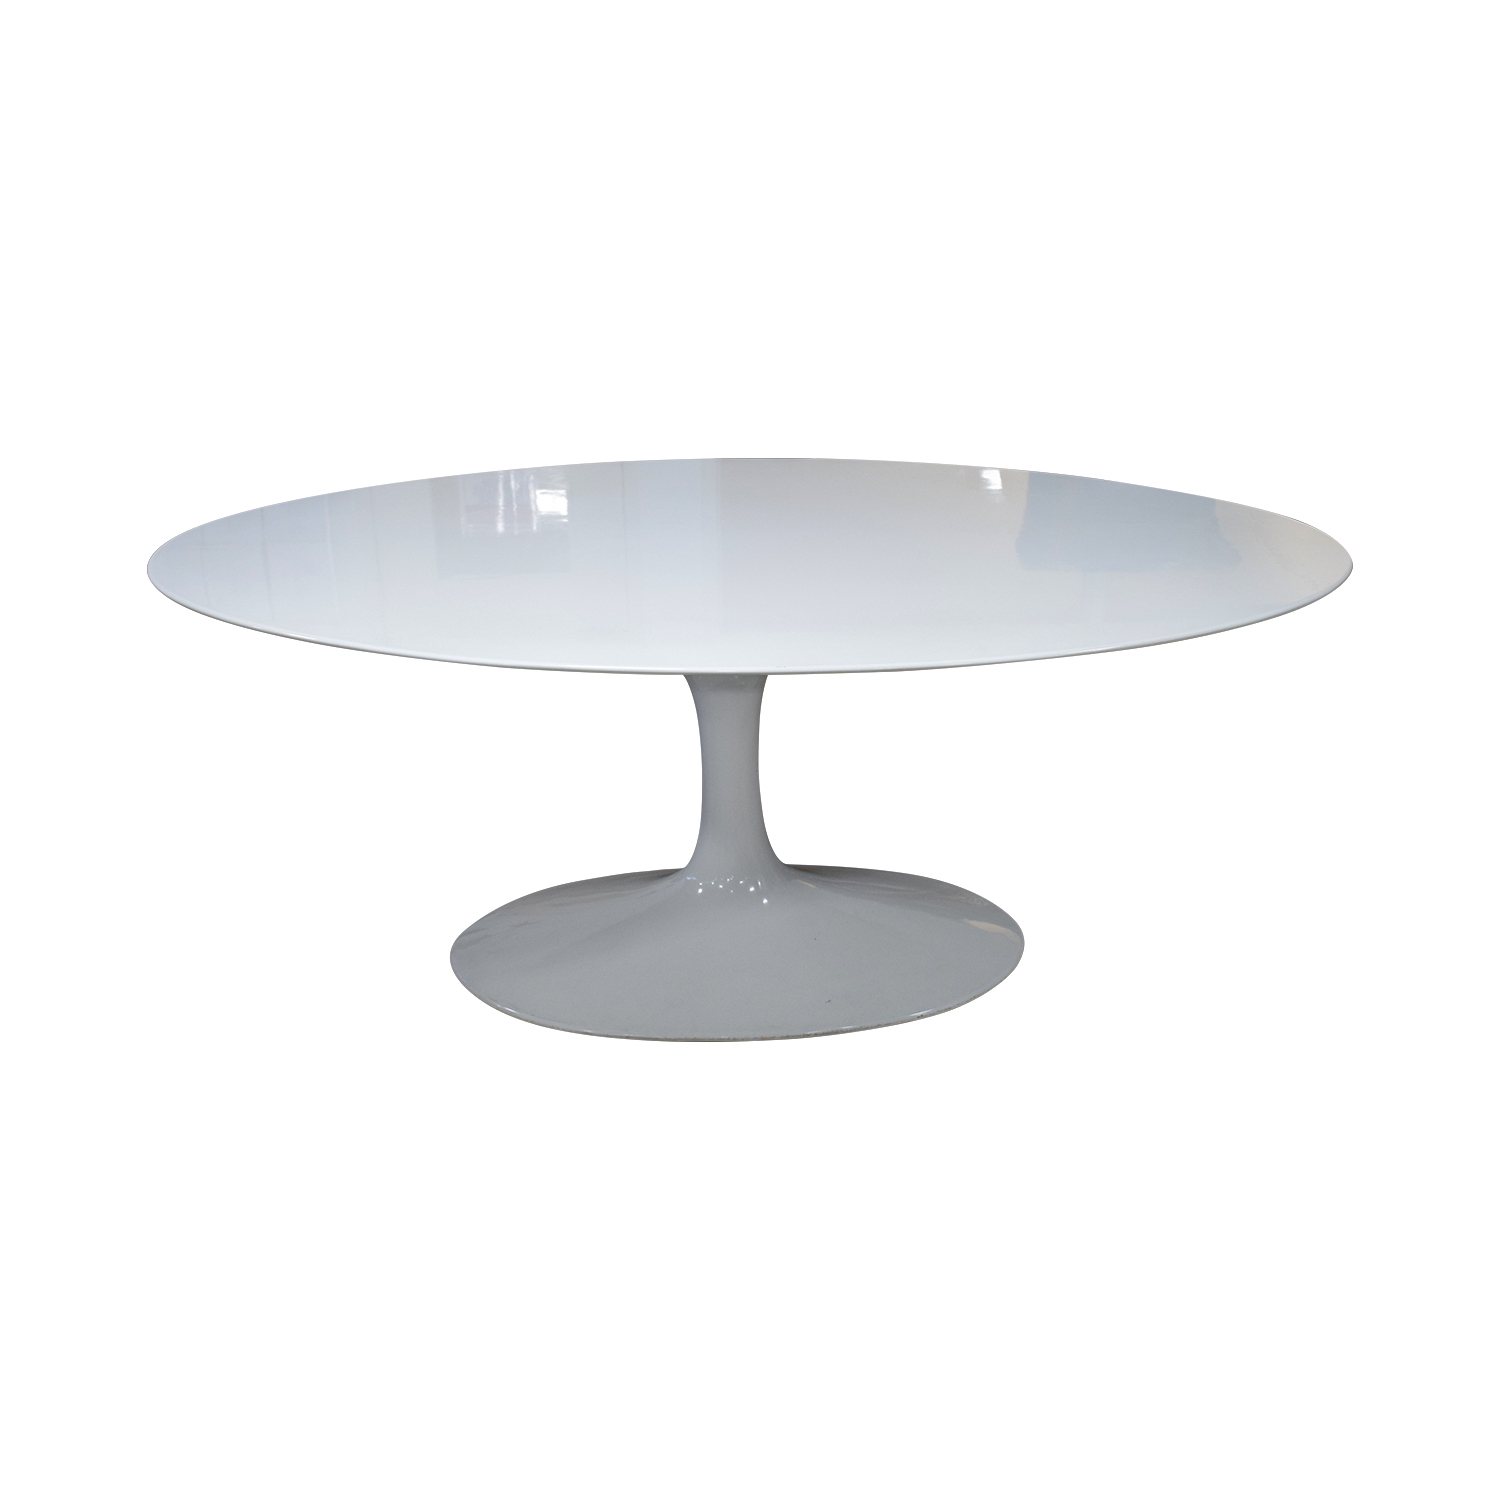 71 Off Replica Of White Knoll Saarinen Oval Table Tables